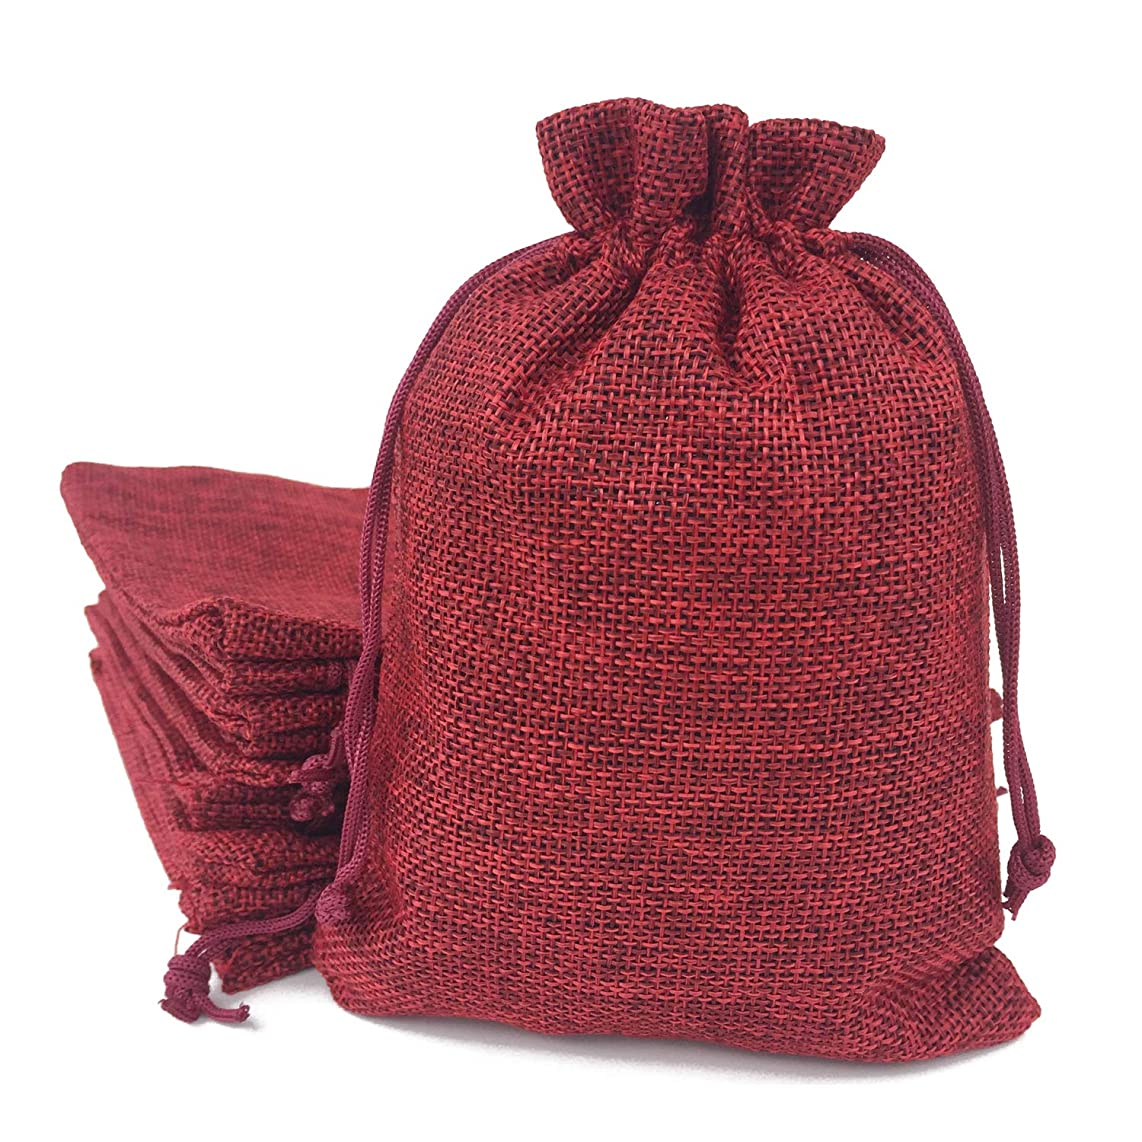 50PCS Burlap Favor Gift Bags with Drawstring and Cotton Lining (13X18CM, 05 Red)